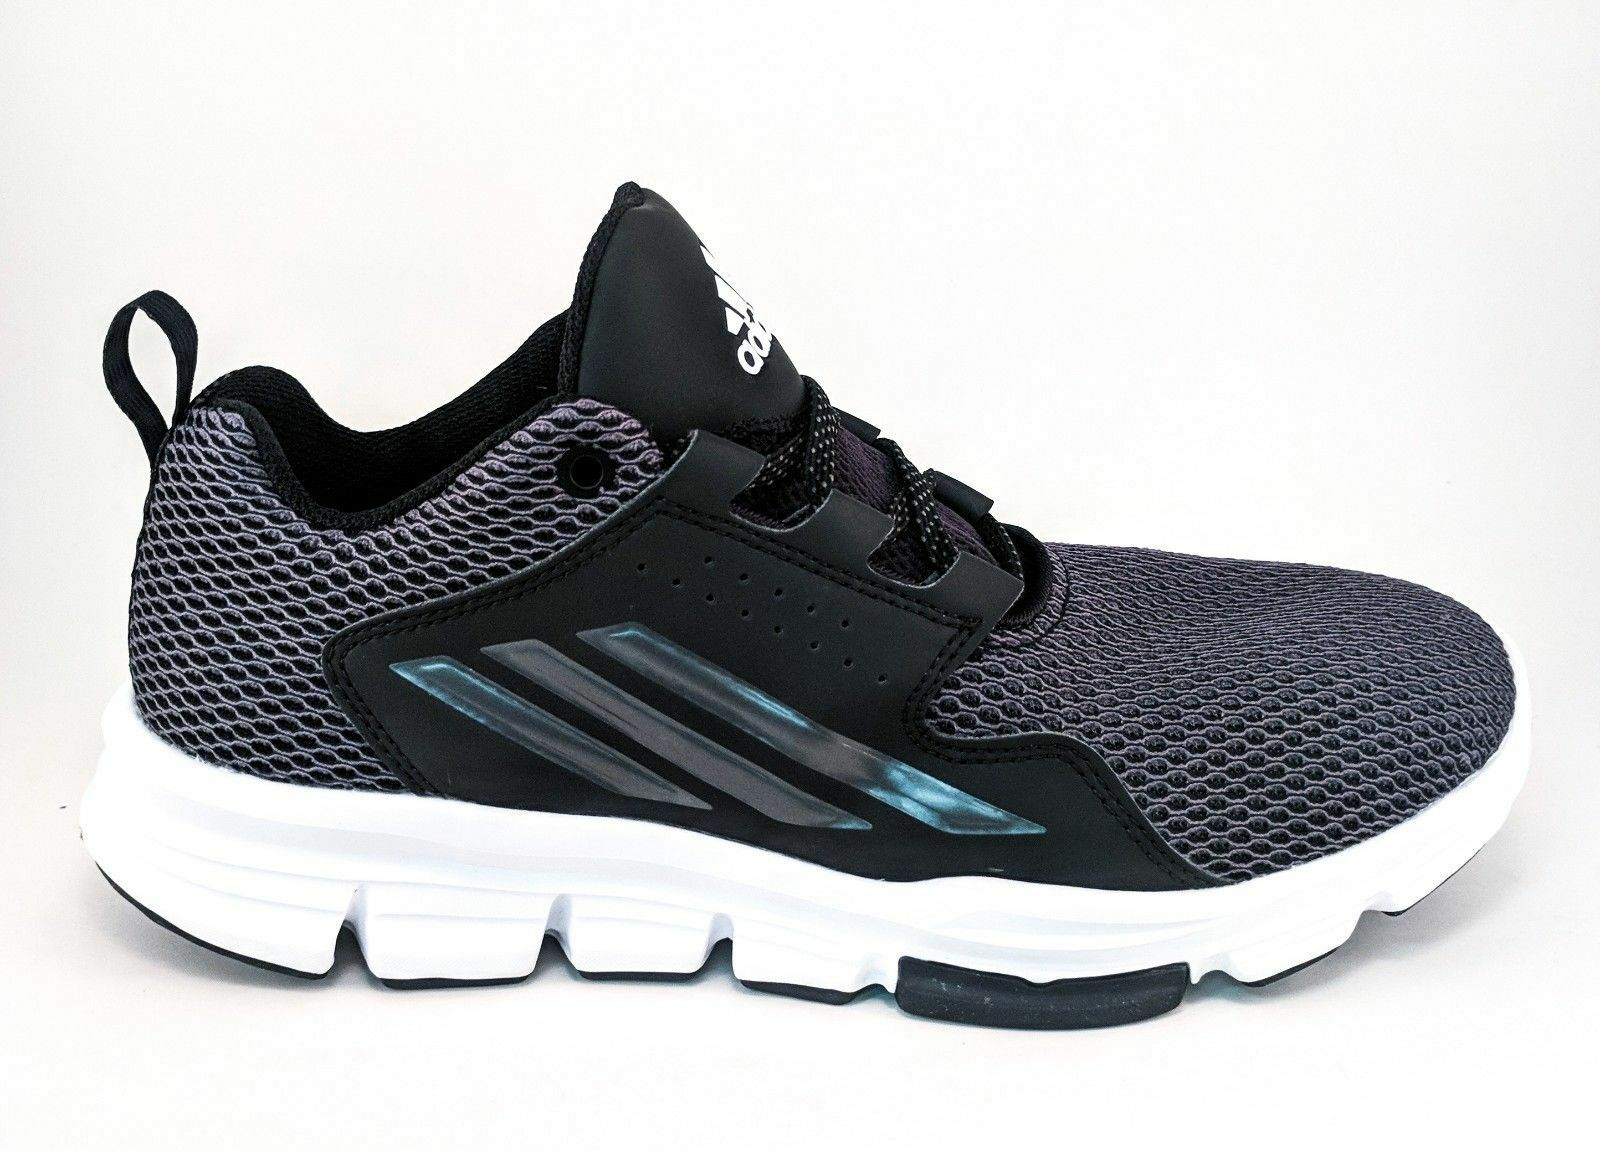 New ADIDAS MENS Gameday TR Price reduction Training Shoes, Black /Gray/ White Seasonal clearance sale